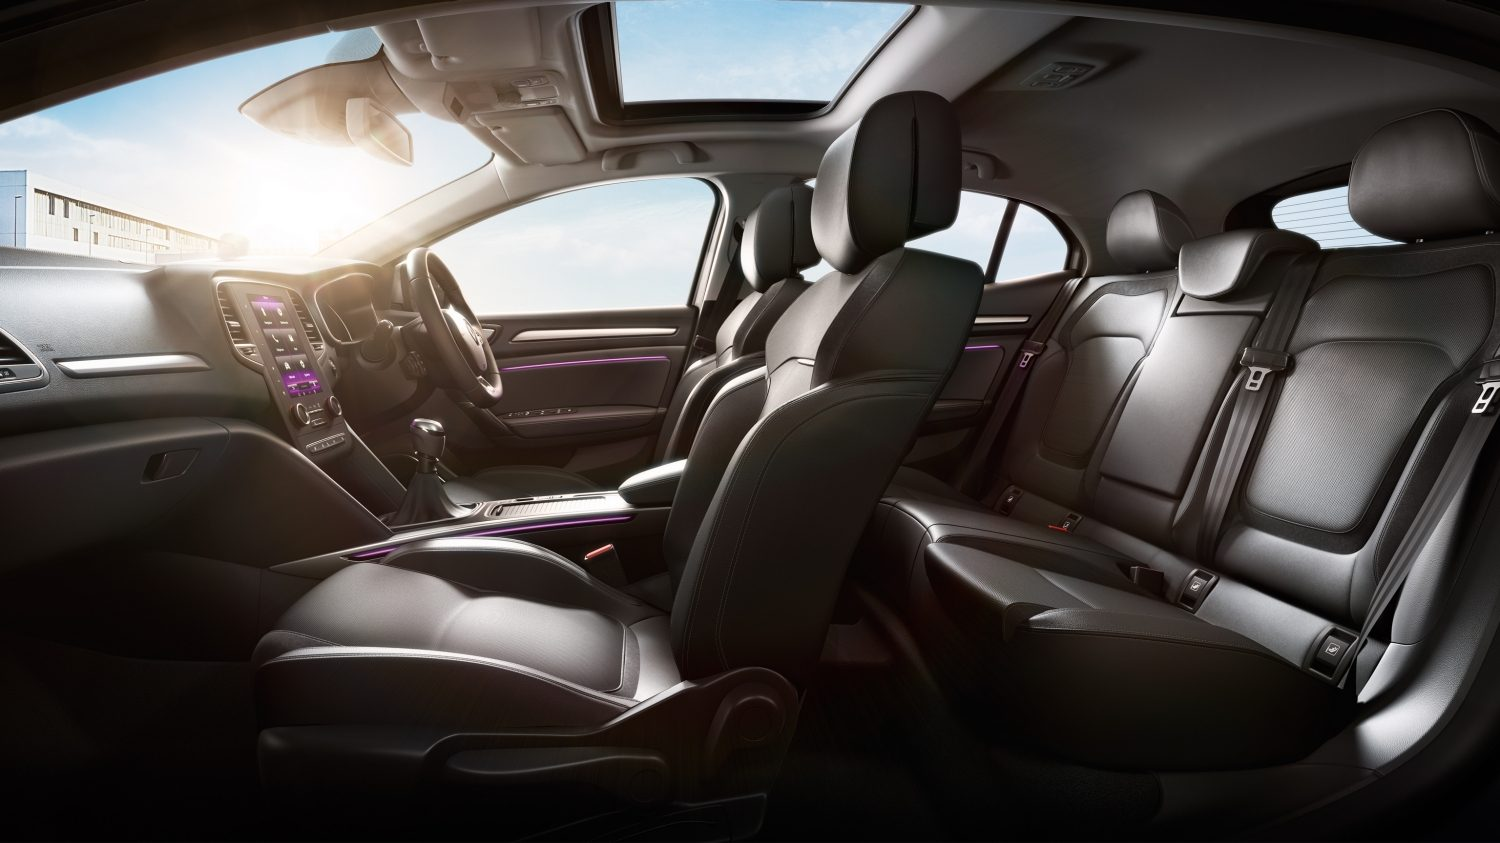 stunning-design-of-the-black-leather-seats-ideas-added-with-black-dash-as-the-renault-megane-hatch-2016-interior